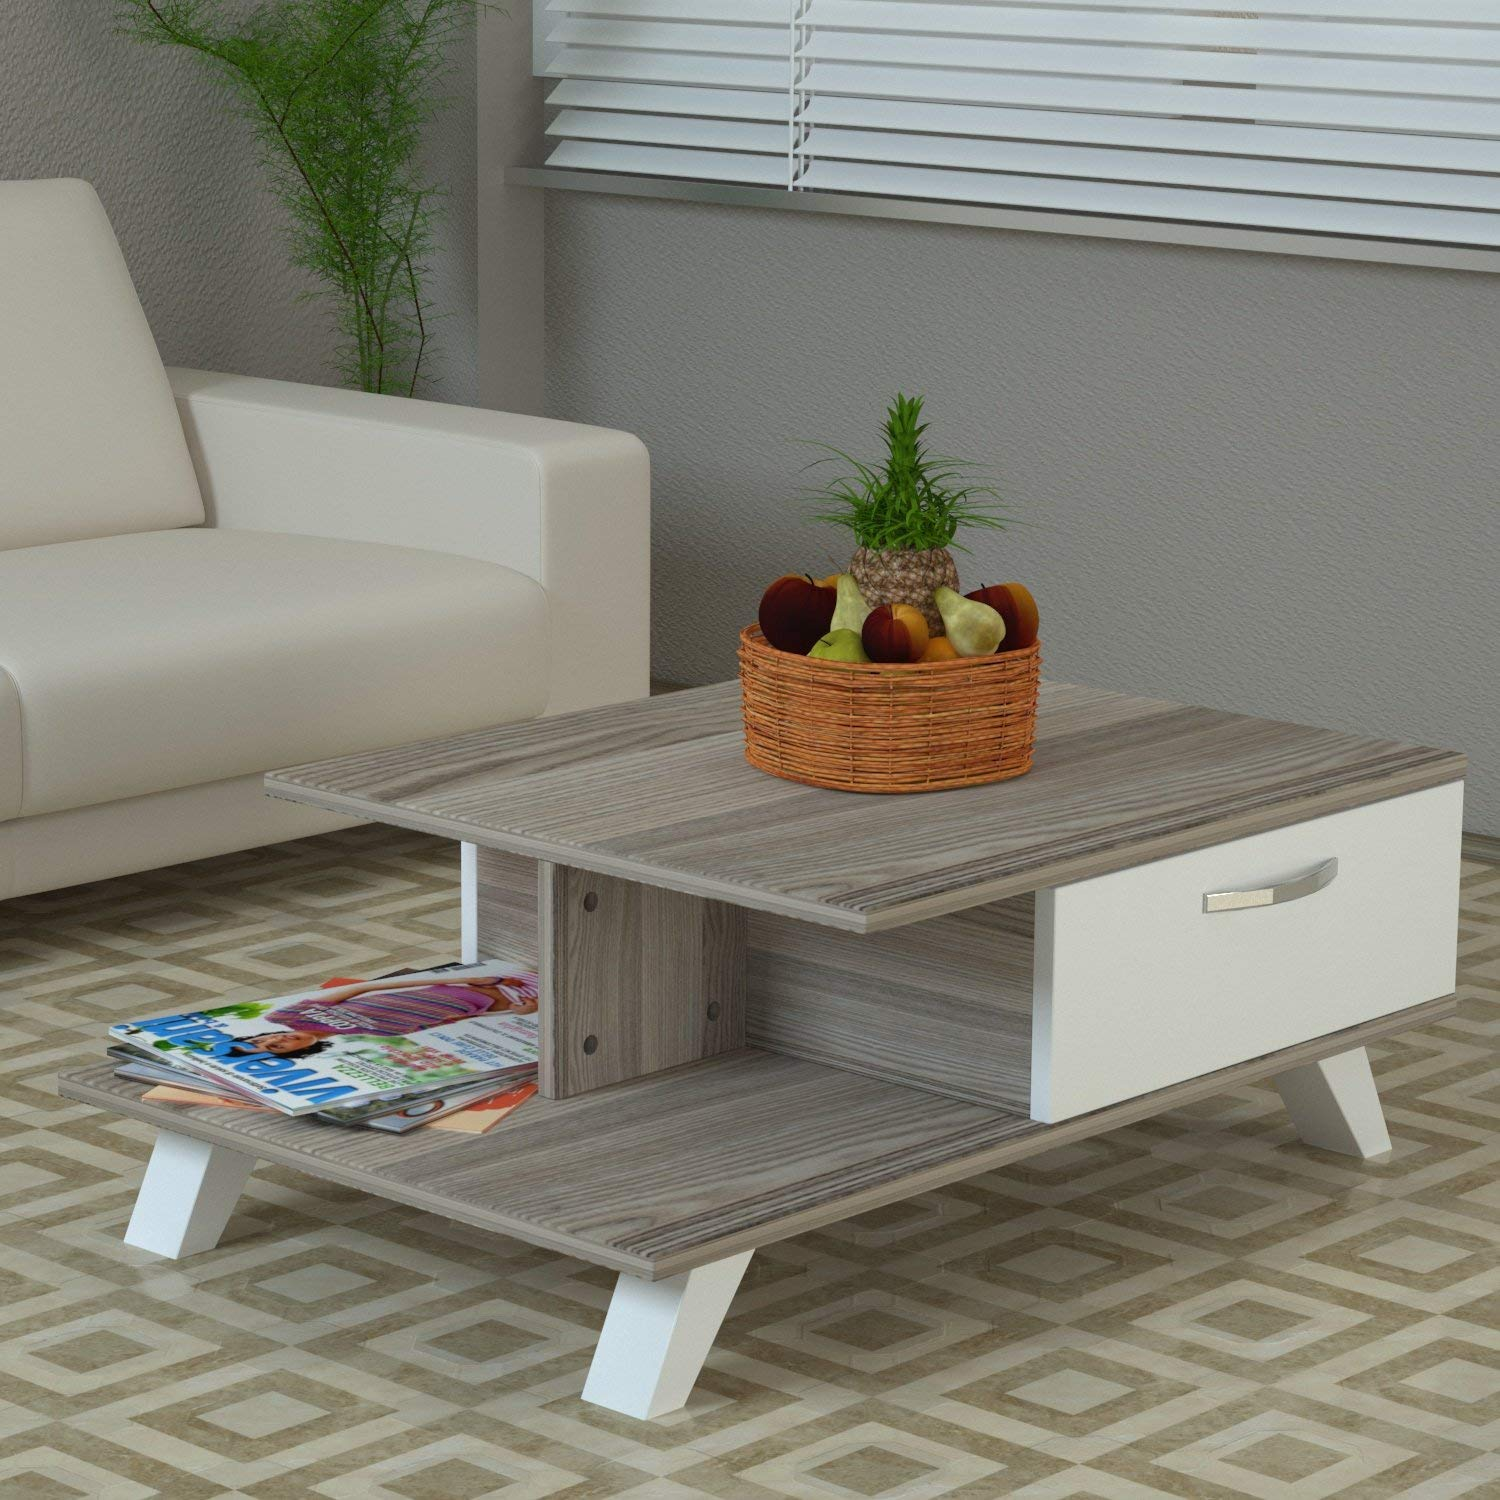 LaModaHome Modern Style Coffee Table - White-Grey Coffee Table Wooden Resistant Table - Cocktail Table with Storage - Best Choice For Quality - For Home, Office, Living Room and More